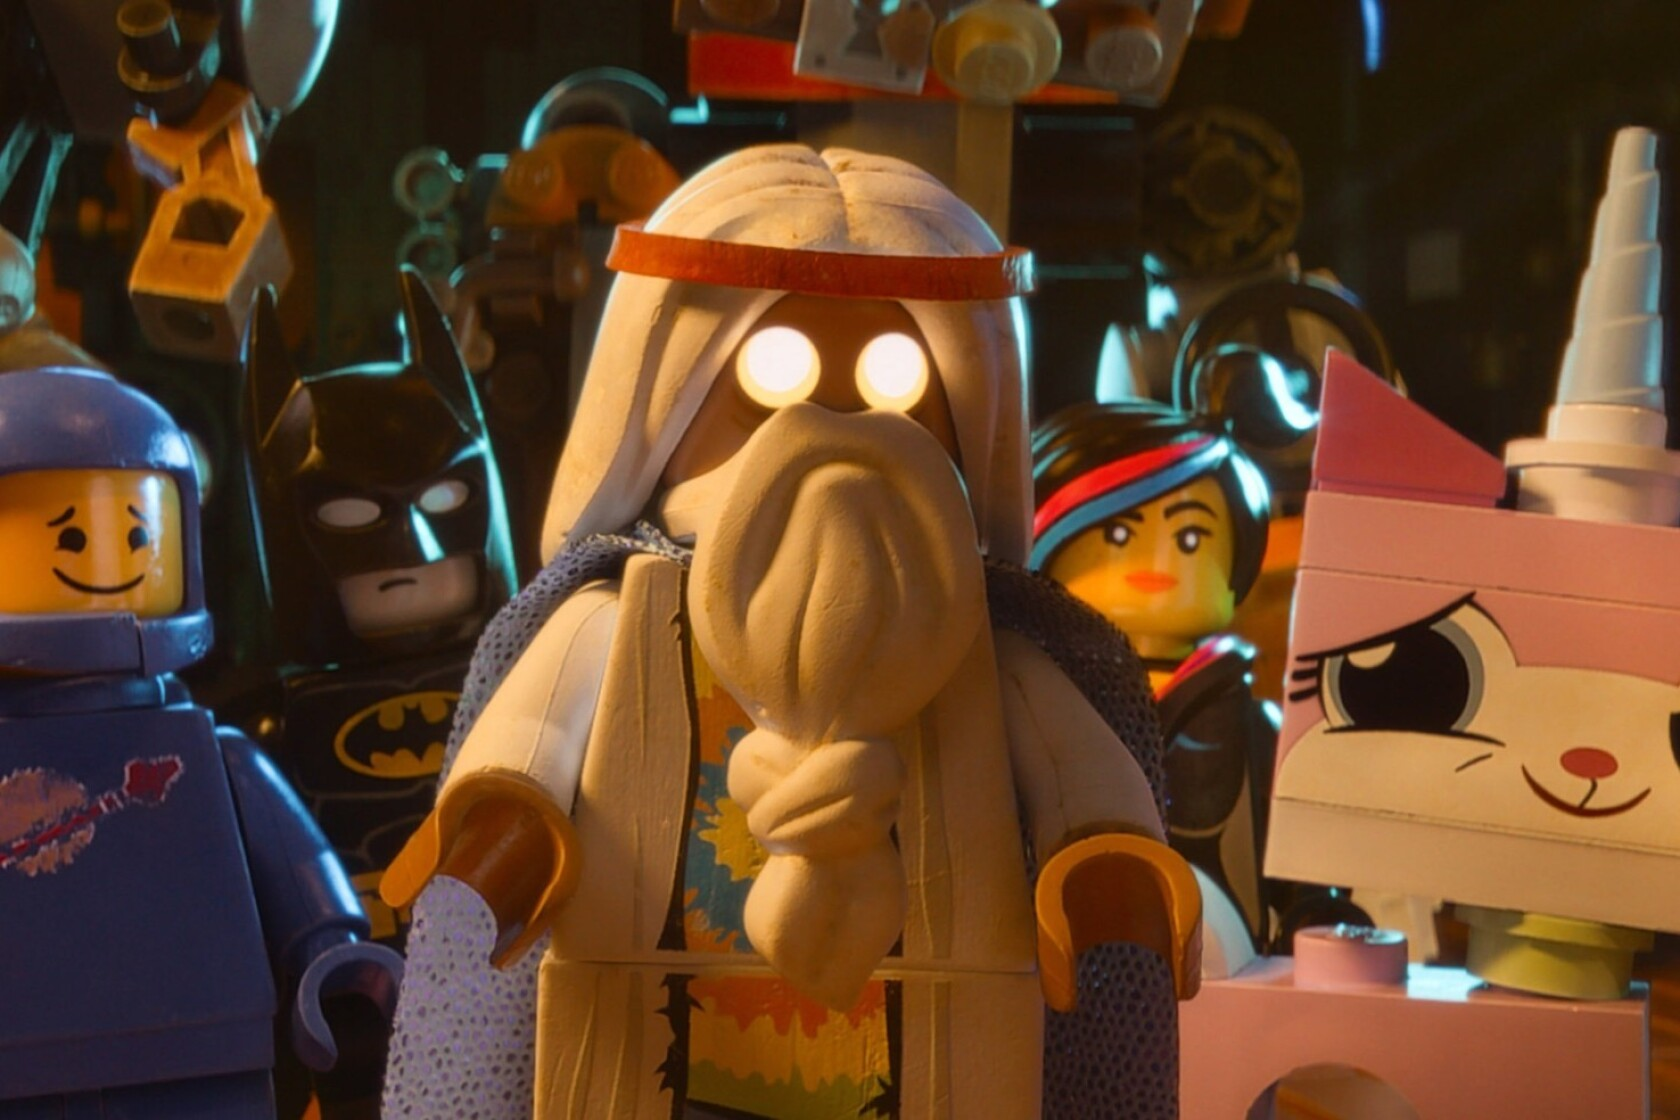 The Lego Movie Building A Postmodern Tongue In Cheek Toy Film Los Angeles Times